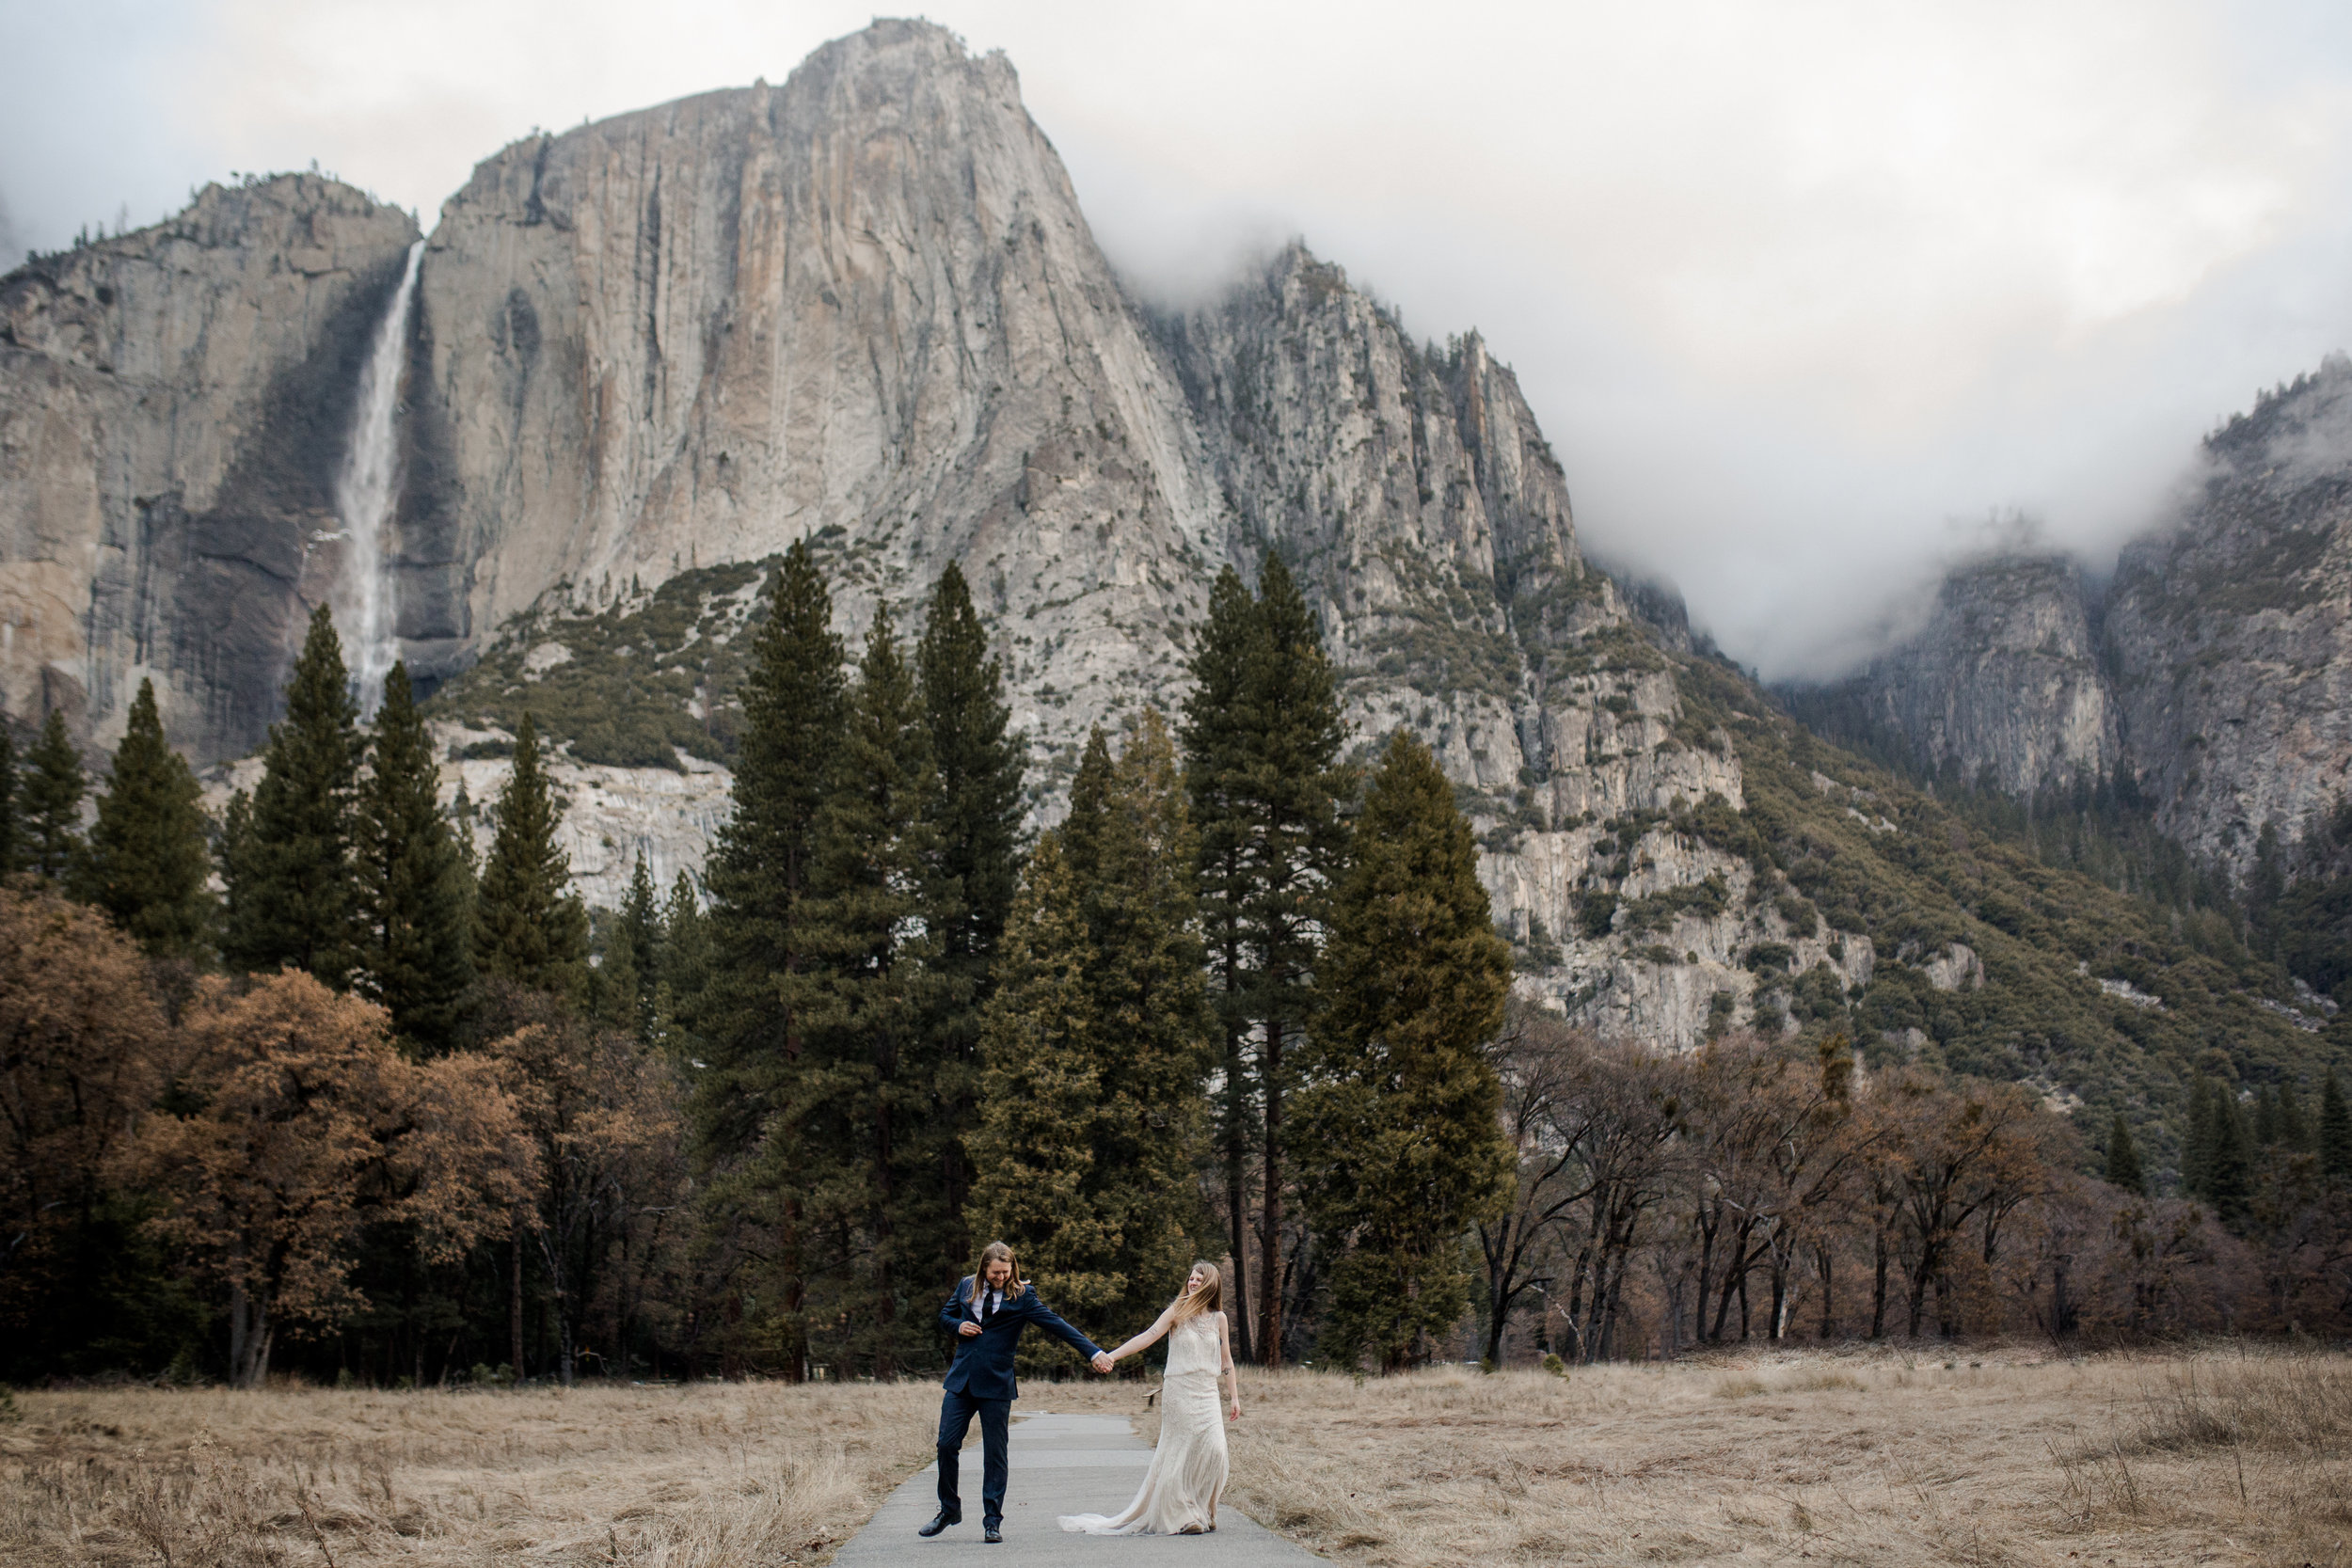 nicole-daacke-photography-yousemite-national-park-elopement-photographer-winter-cloud-moody-elope-inspiration-yosemite-valley-tunnel-view-winter-cloud-fog-weather-wedding-photos-25.jpg